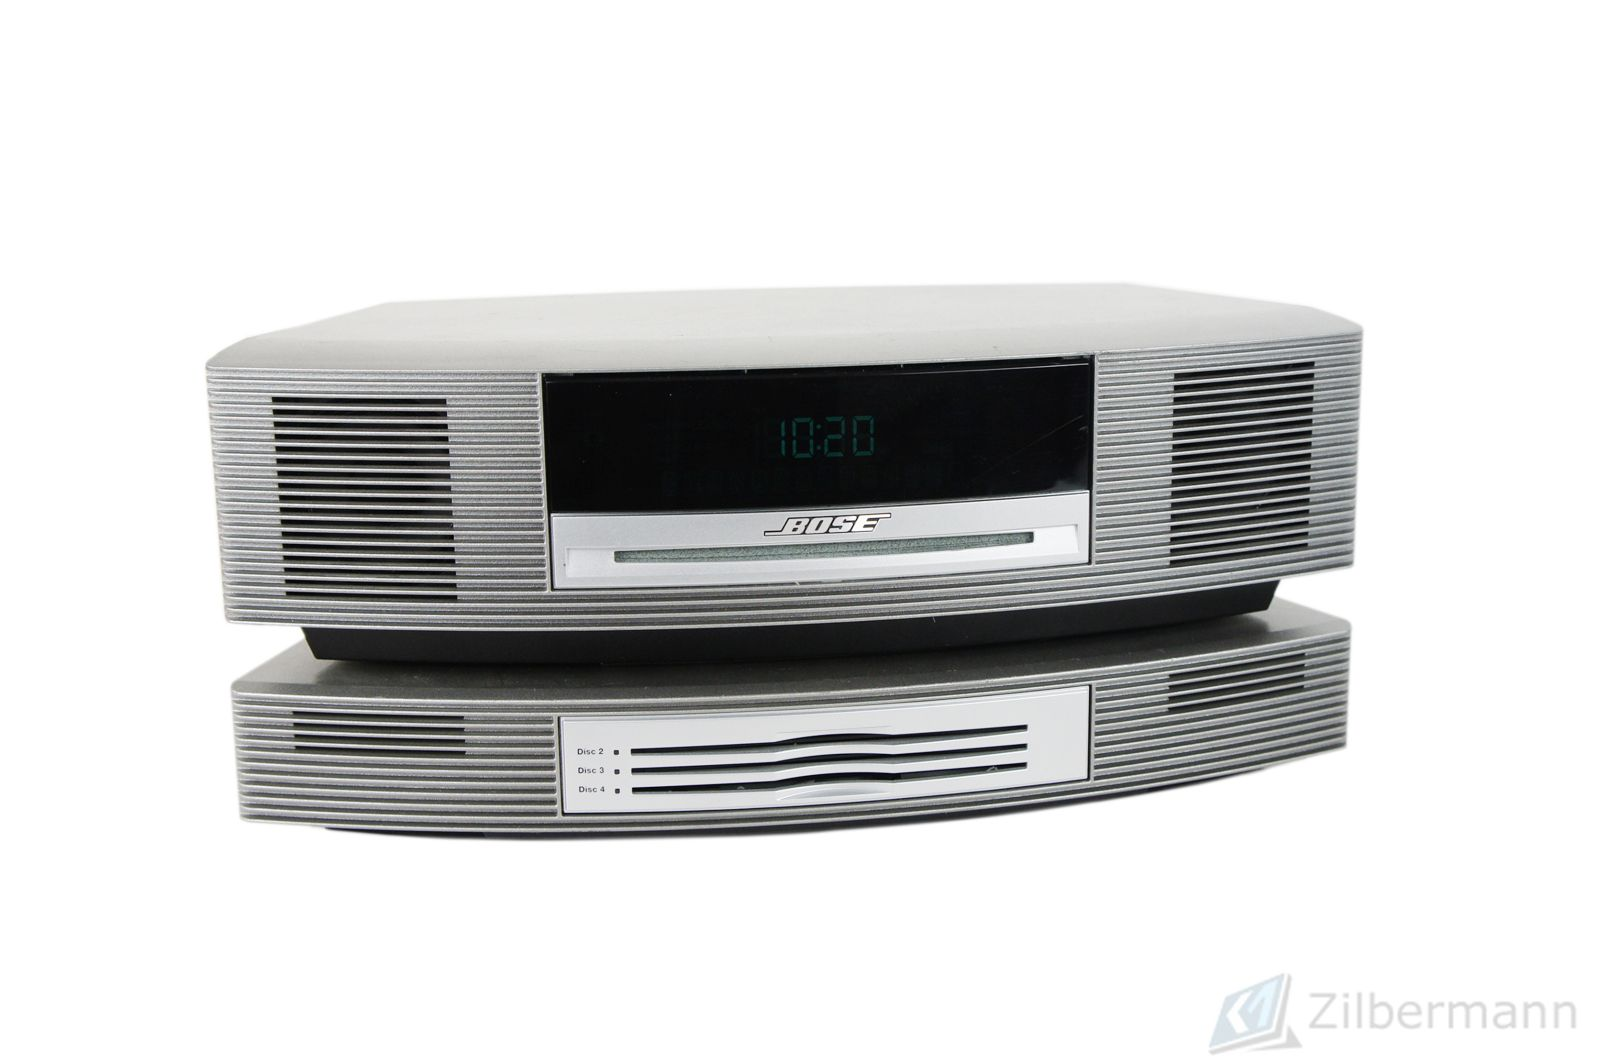 Bose_Wave_Music_System__Bose_Multi-CD_Wechsler